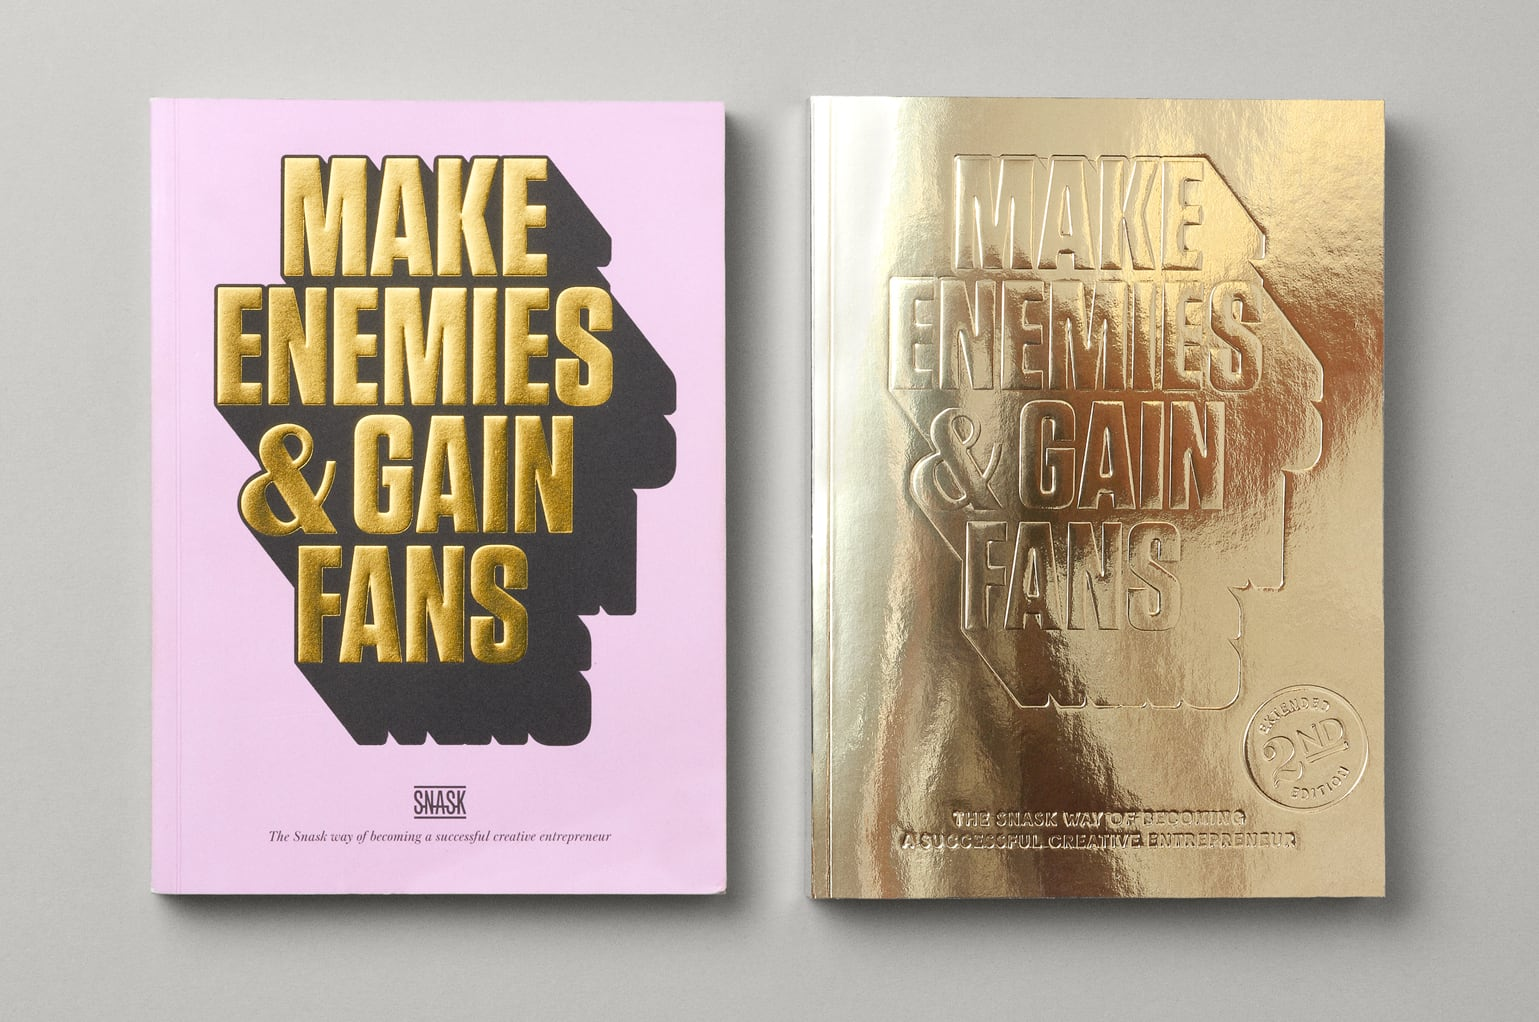 MAKE ENEMIES & GAIN FANS — Editorial design for the true and unraveling story about SNASK